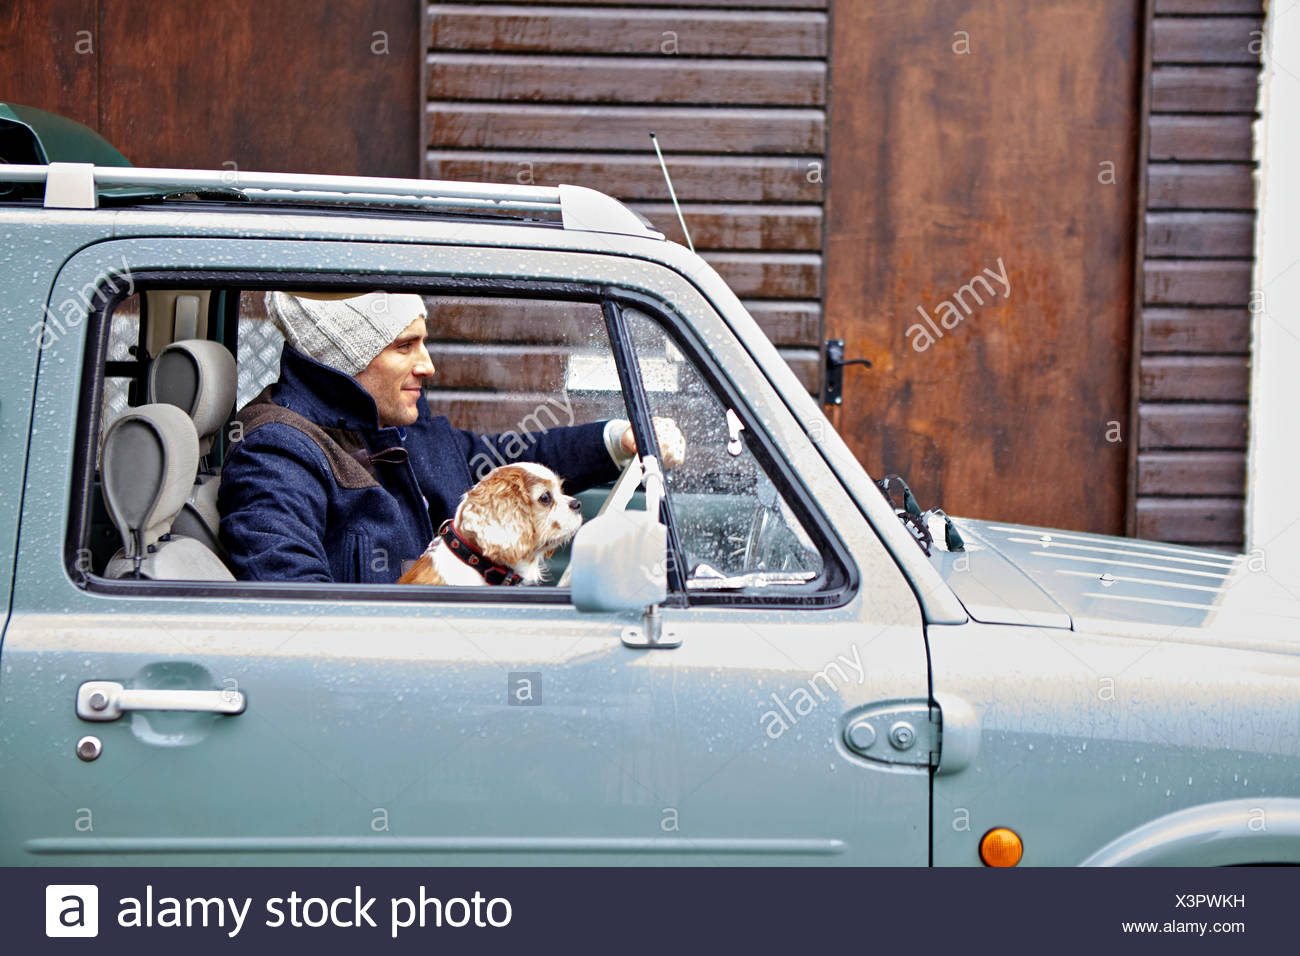 Mid adult man with dog driving van Photo Stock